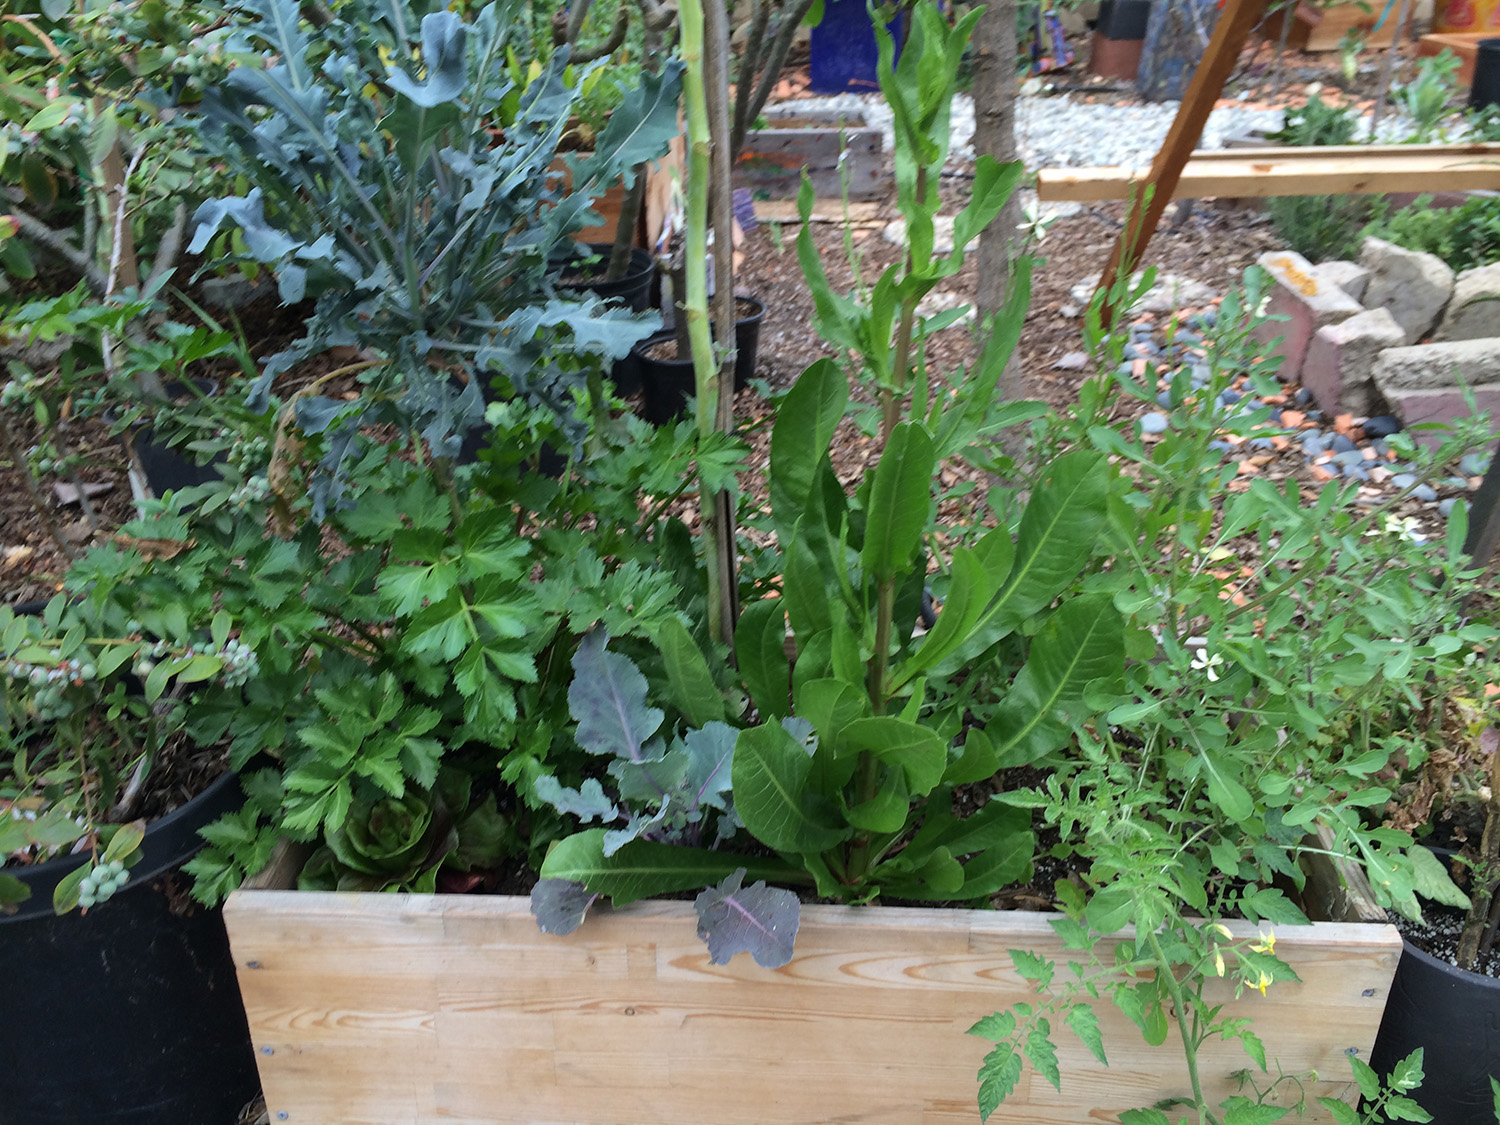 greens in a raised bed